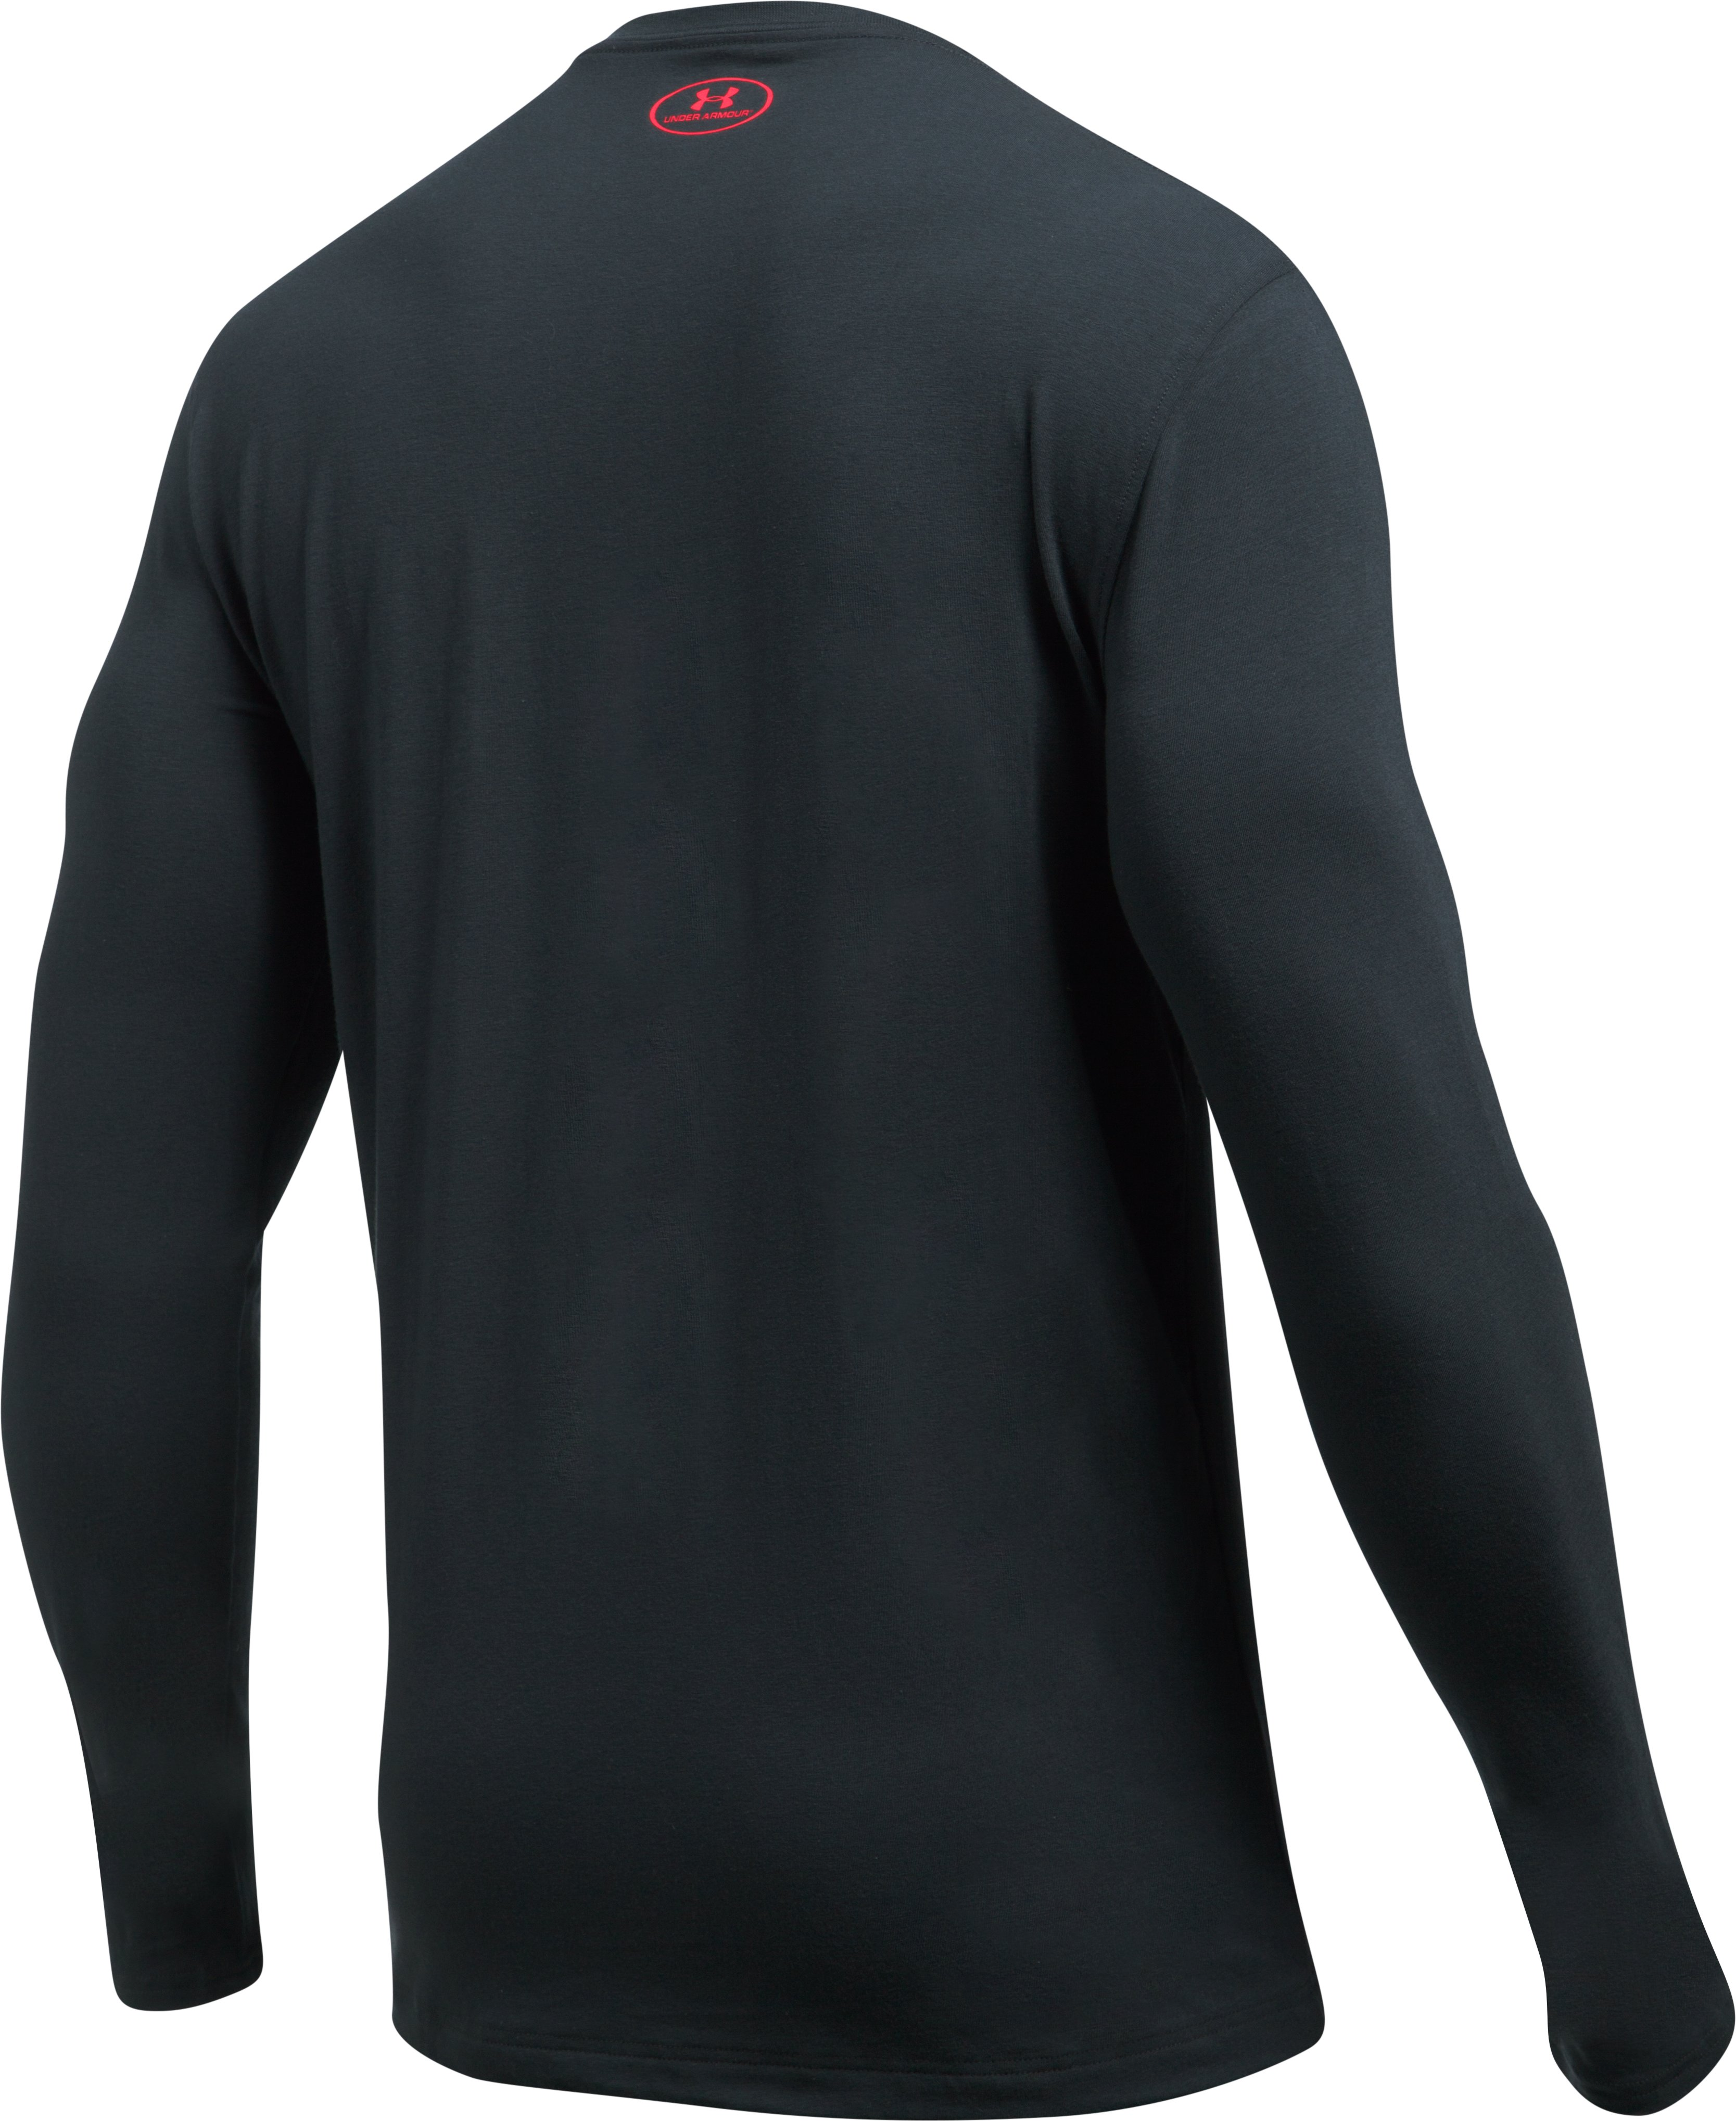 Men's UA Sleeve Hit Long Sleeve T-Shirt, ANTHRACITE,